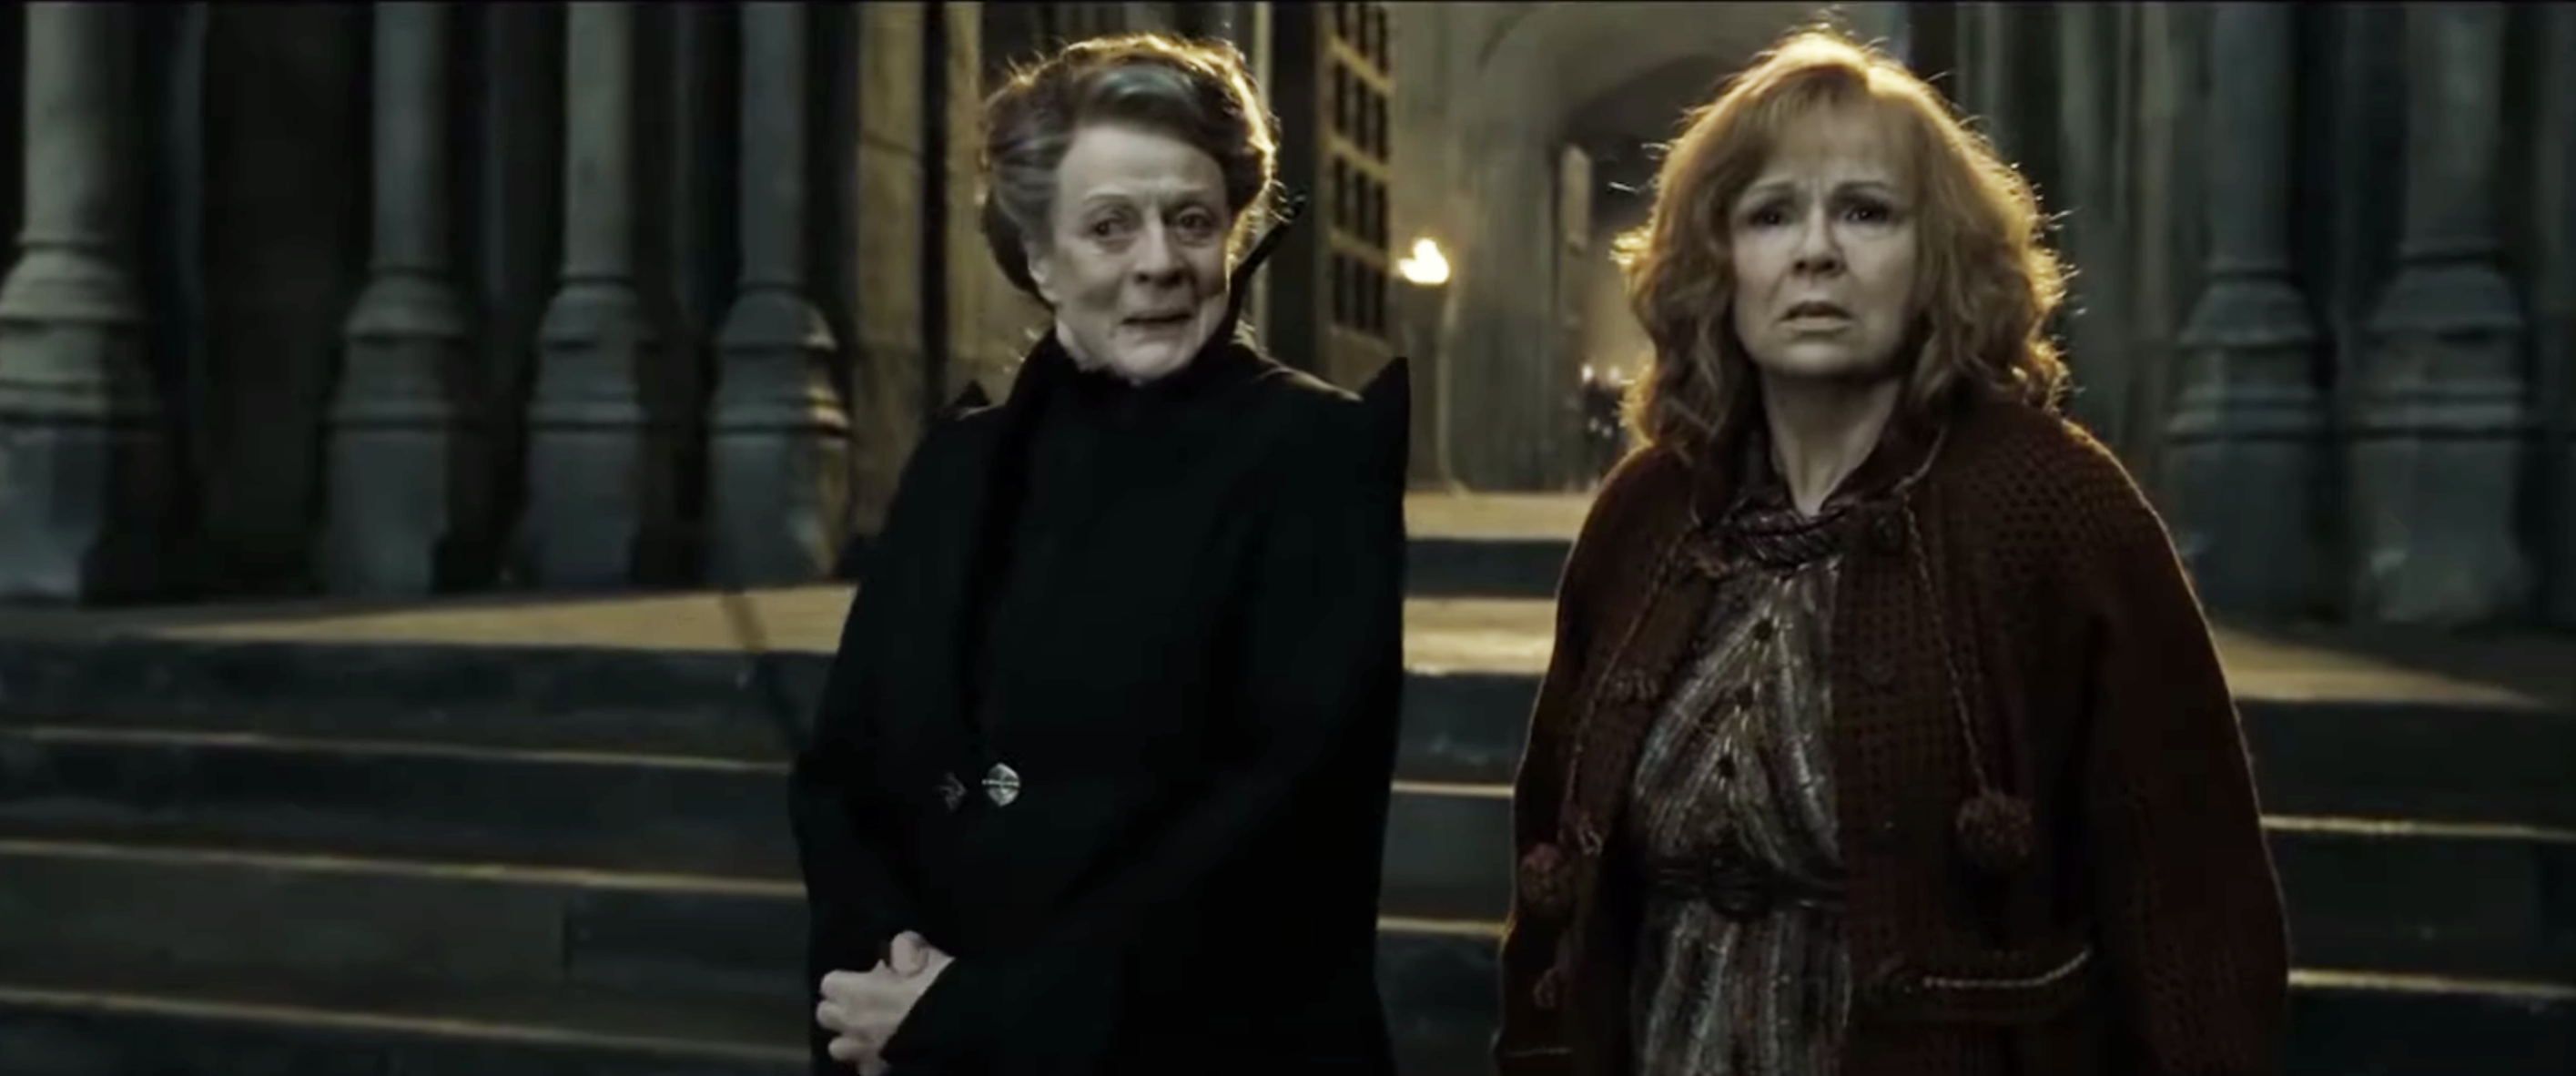 McGonagall giddily telling Molly Weasley about her favorite spell